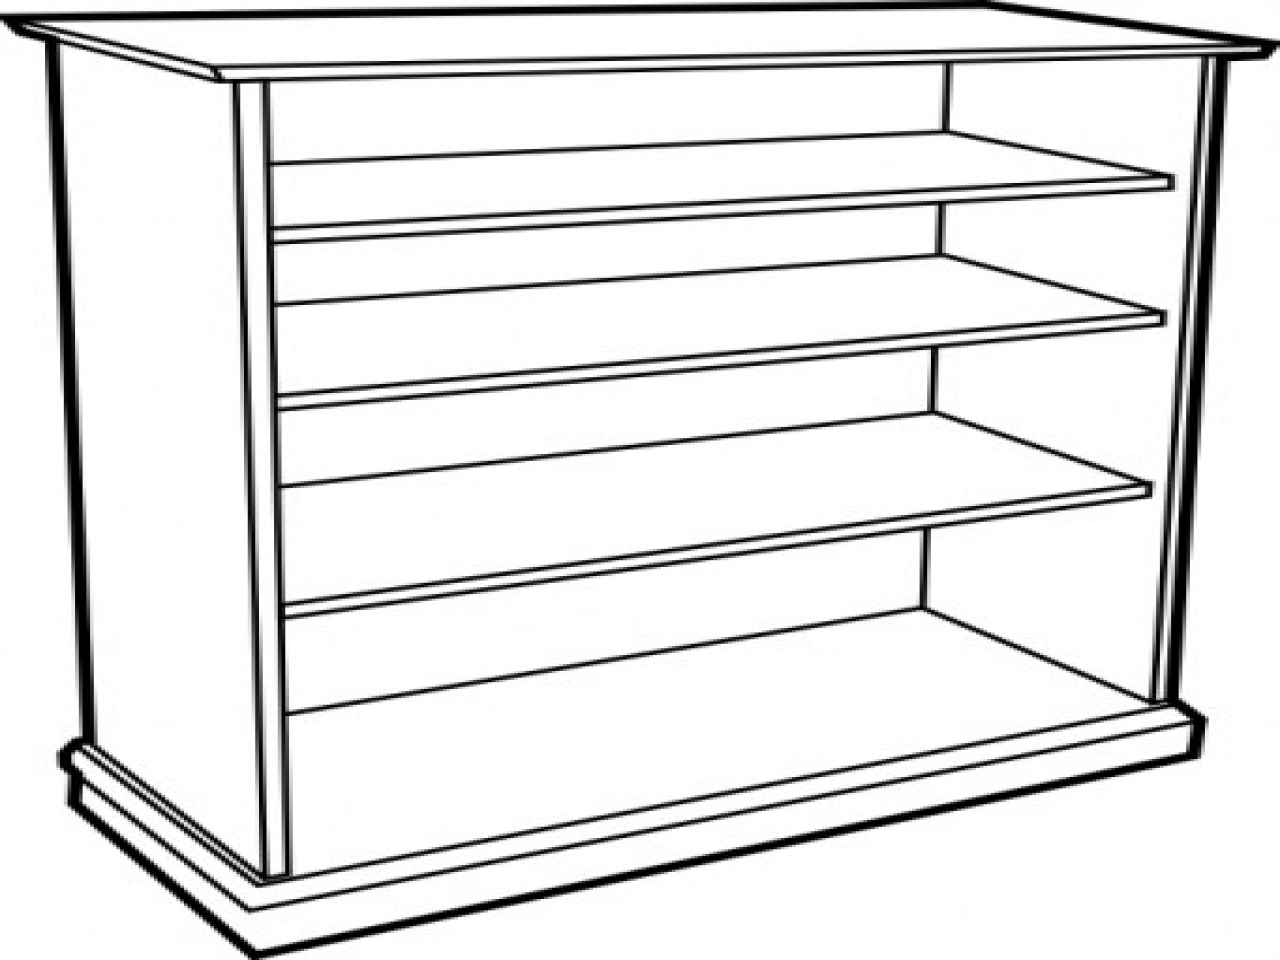 Bookshelf clipart black and white 7 » Clipart Station.